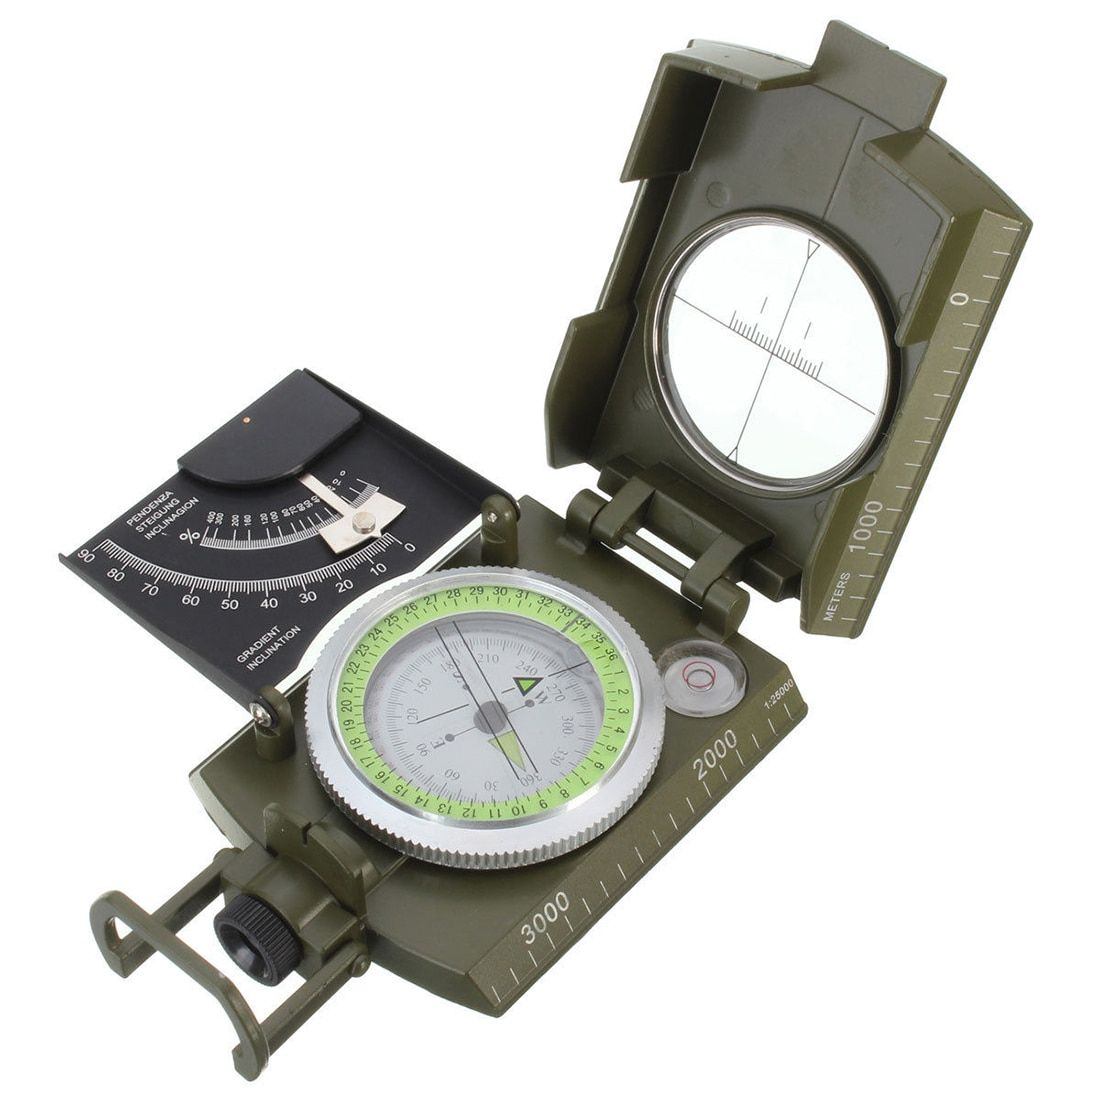 JHO-New Professional Military Army Metal Sighting Compass clinometer Camping